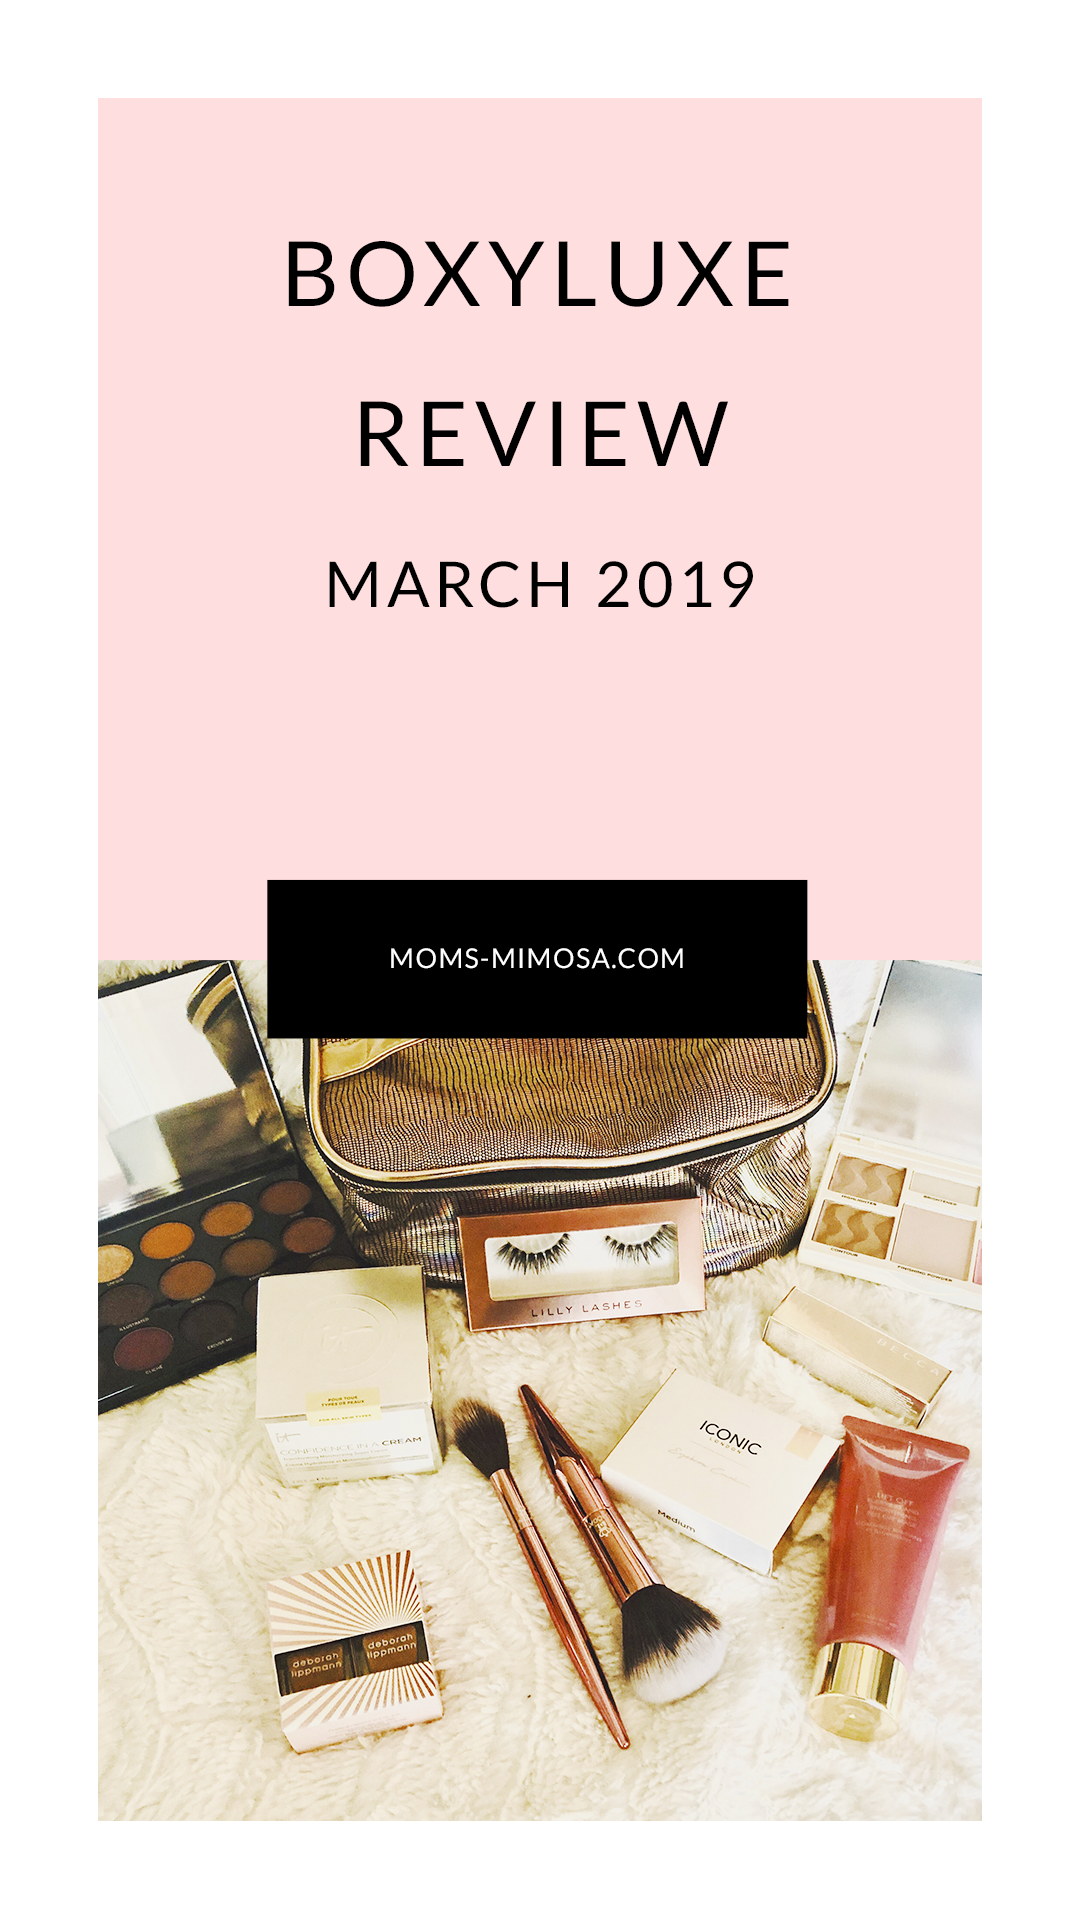 March 2019 BoxyLuxe Confidence in a cream, All things